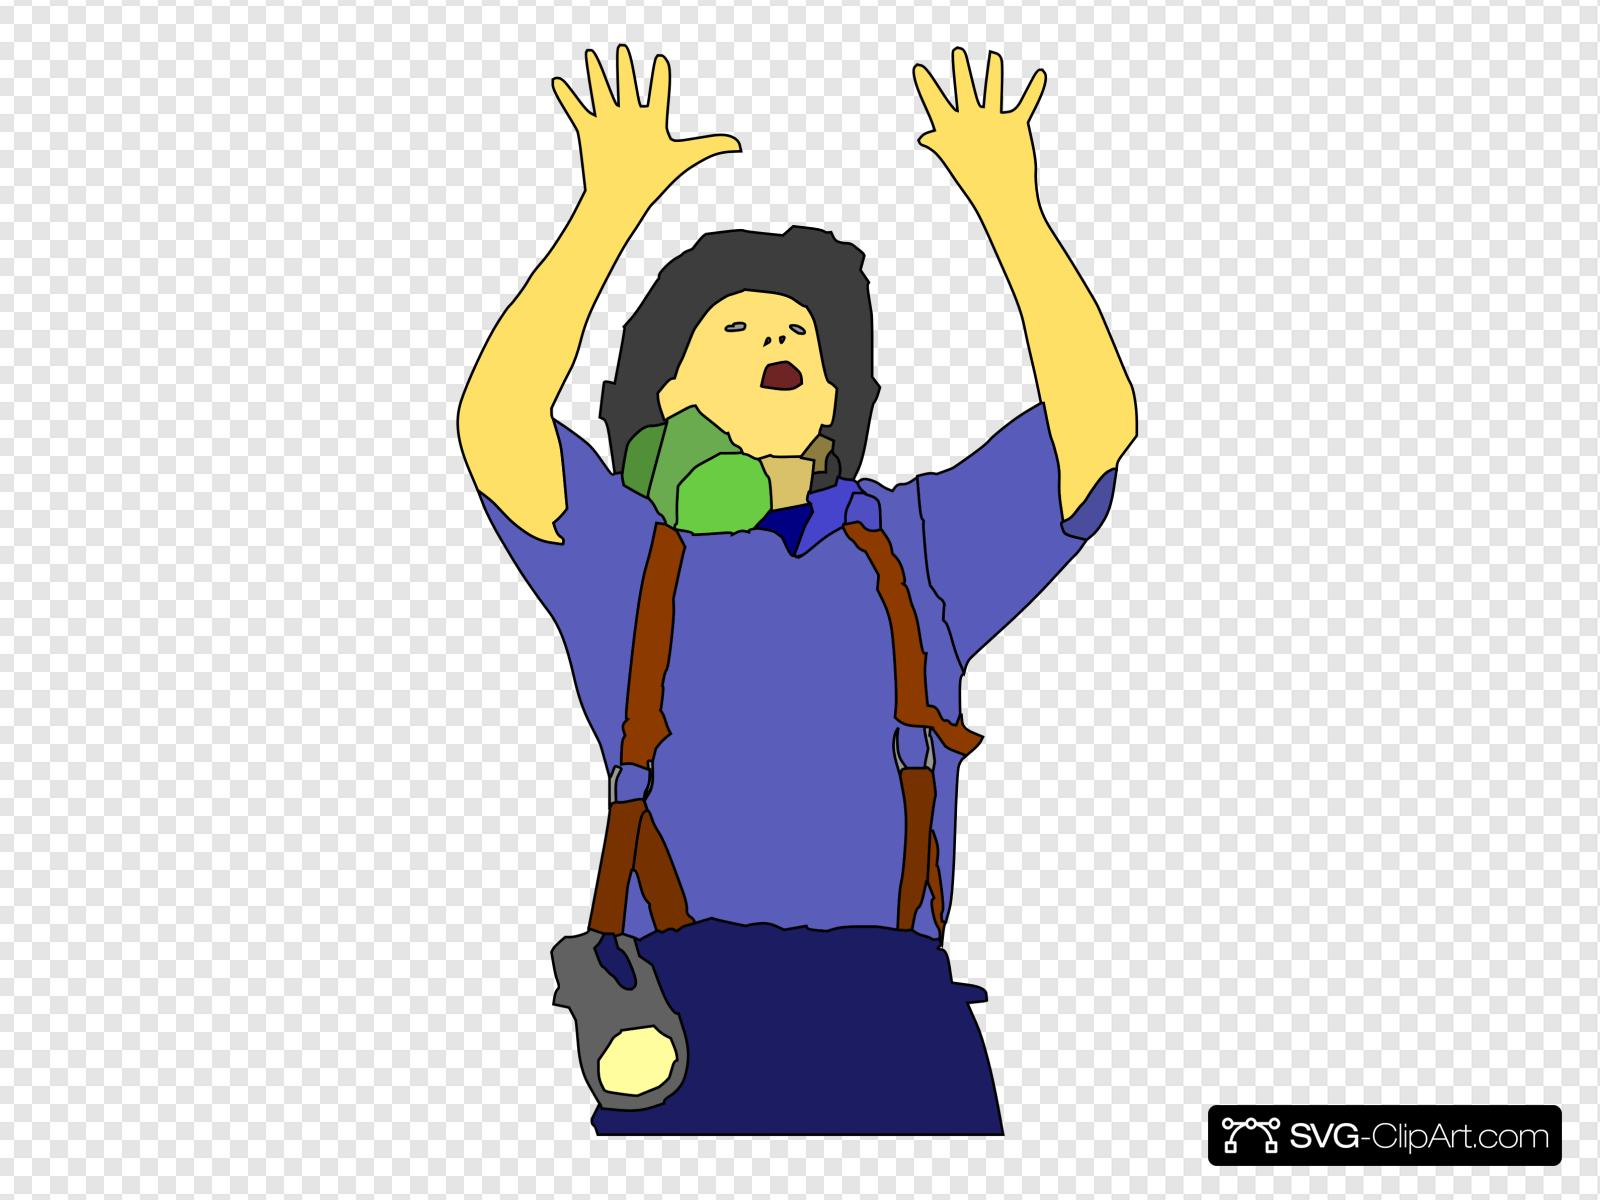 Fireman Asking For Support Clip art, Icon and SVG.